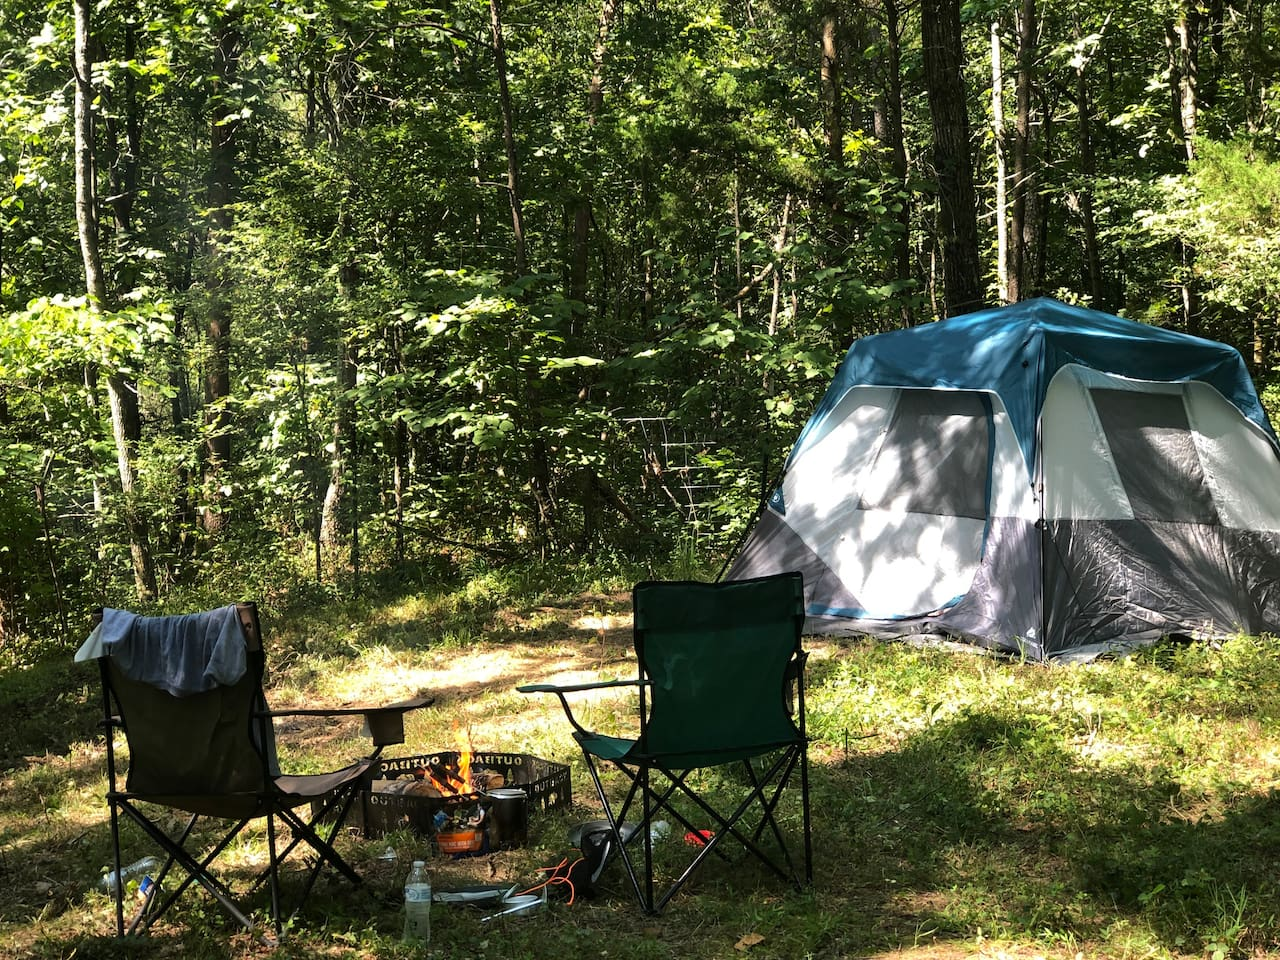 Shade & privacy in the forest at this campsite